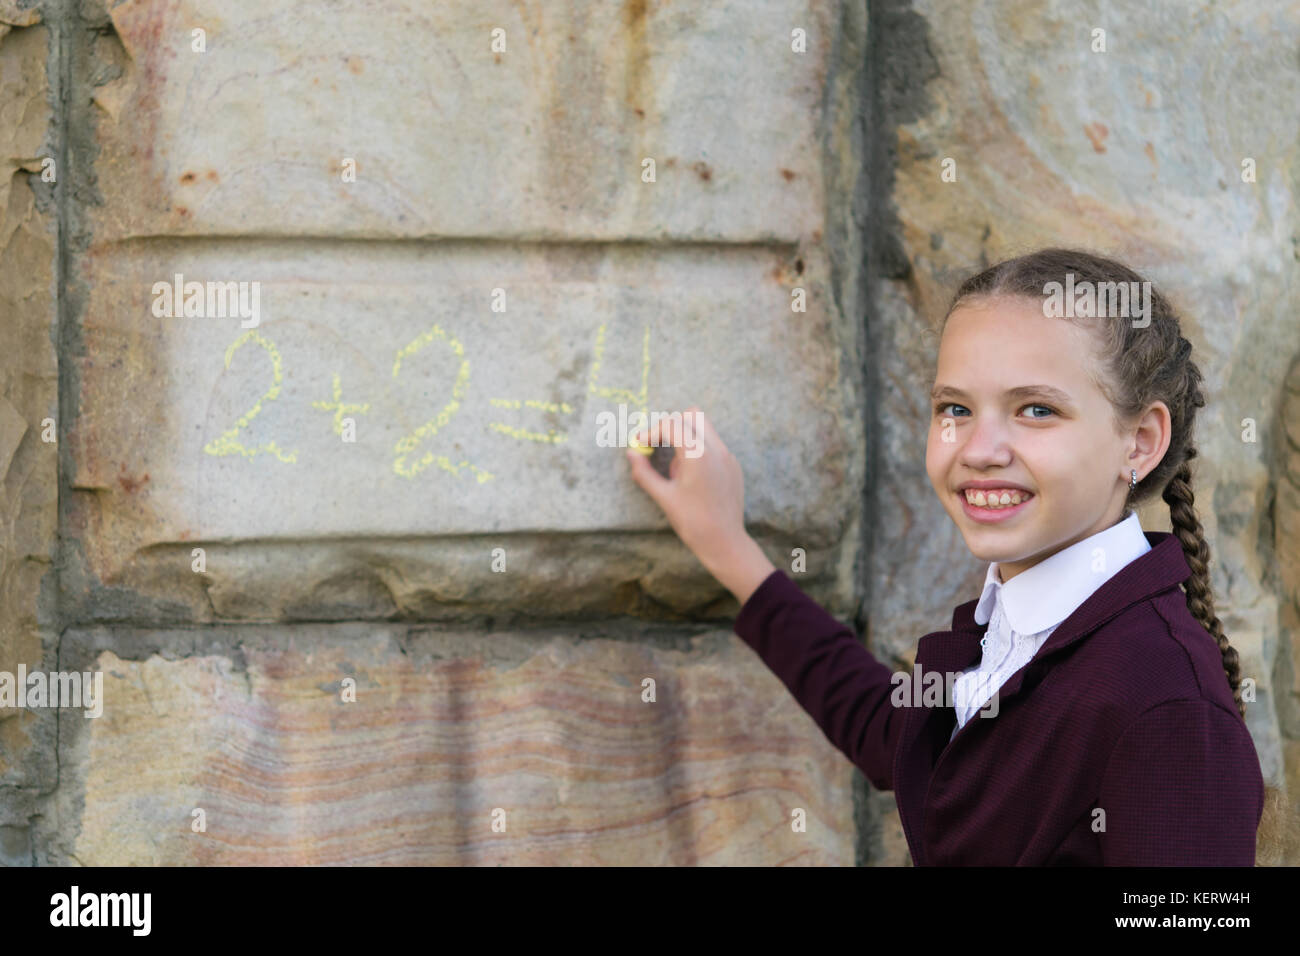 girl from school decides for example on the wall - Stock Image